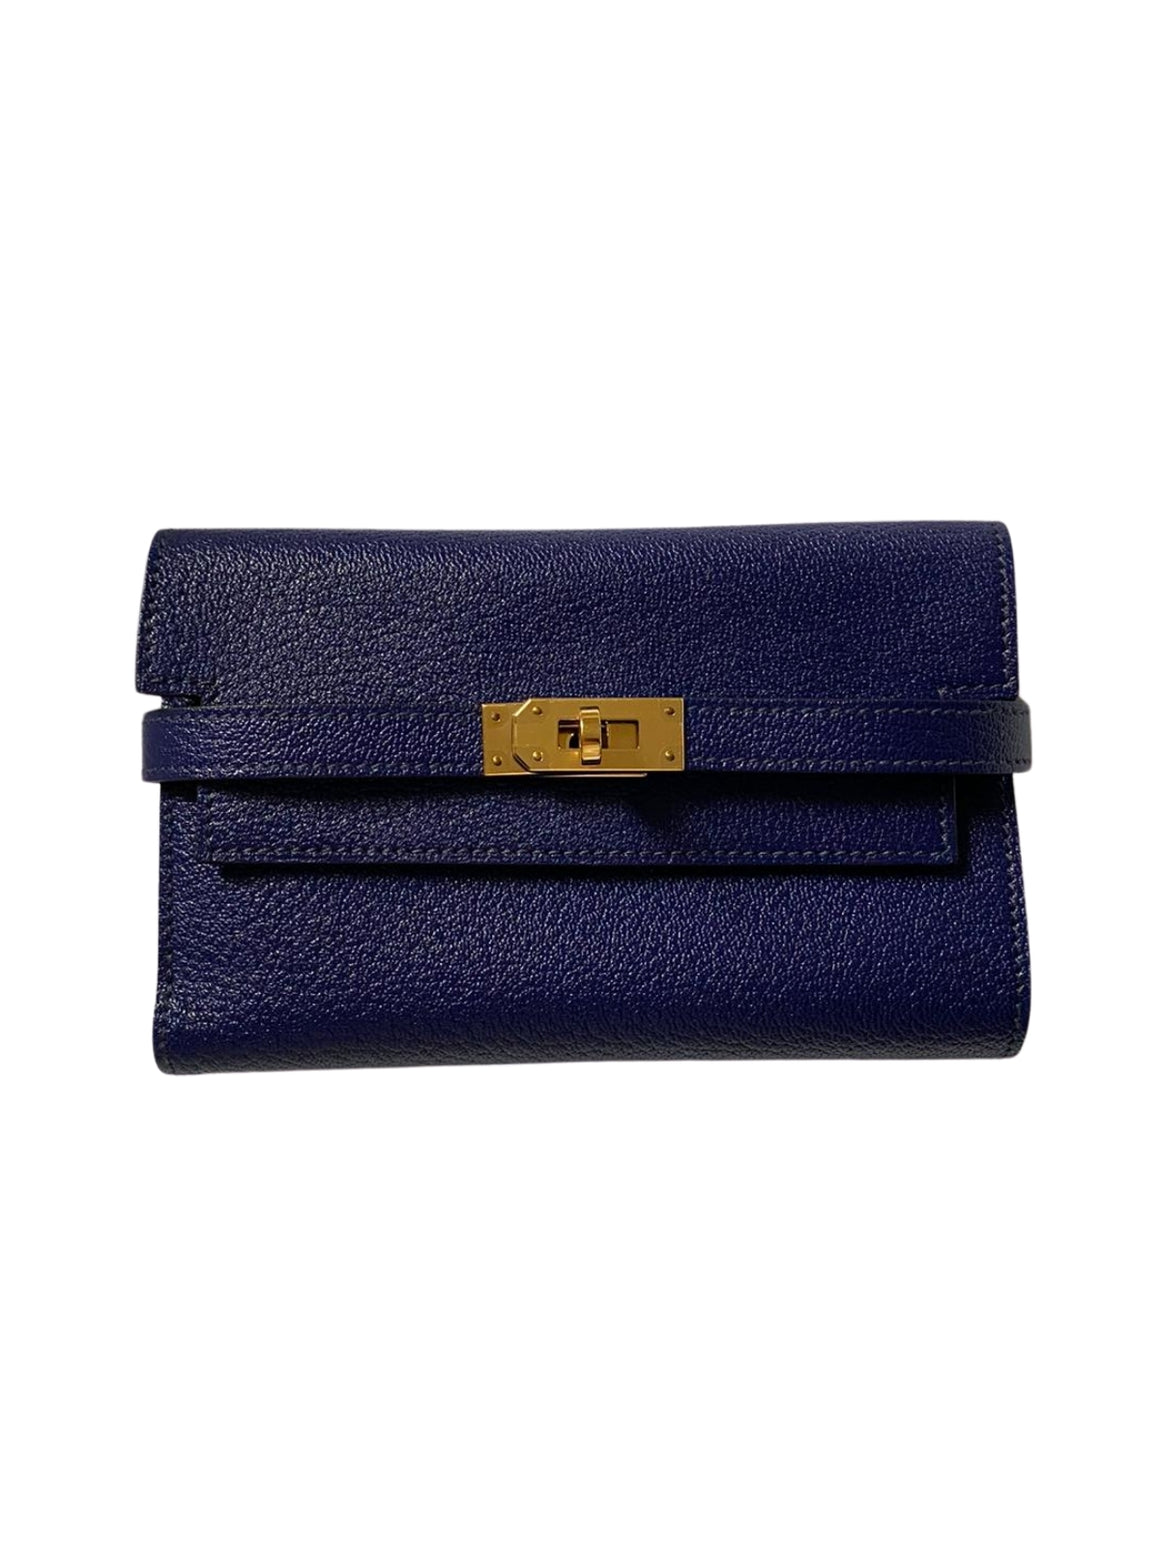 HERMES KELLY SHORT CLEMENCE LEATHER WALLET WITH GOLD HARDWARE